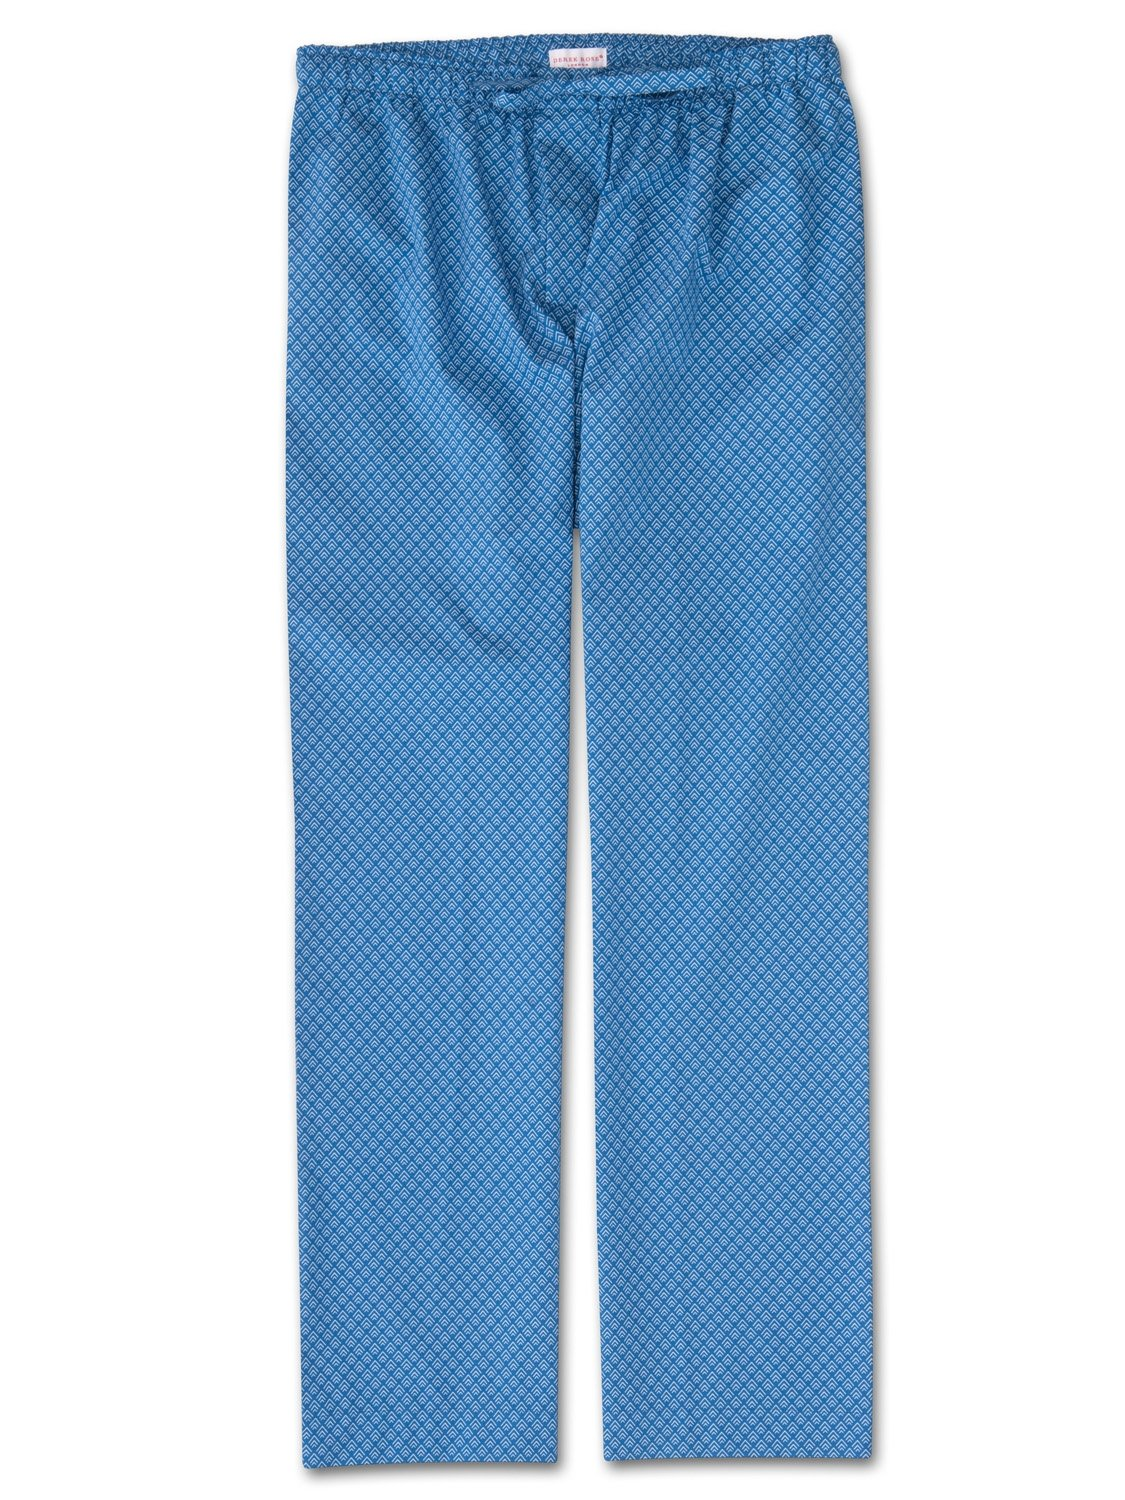 Men's Lounge Trousers Nelson 66 Cotton Batiste Blue